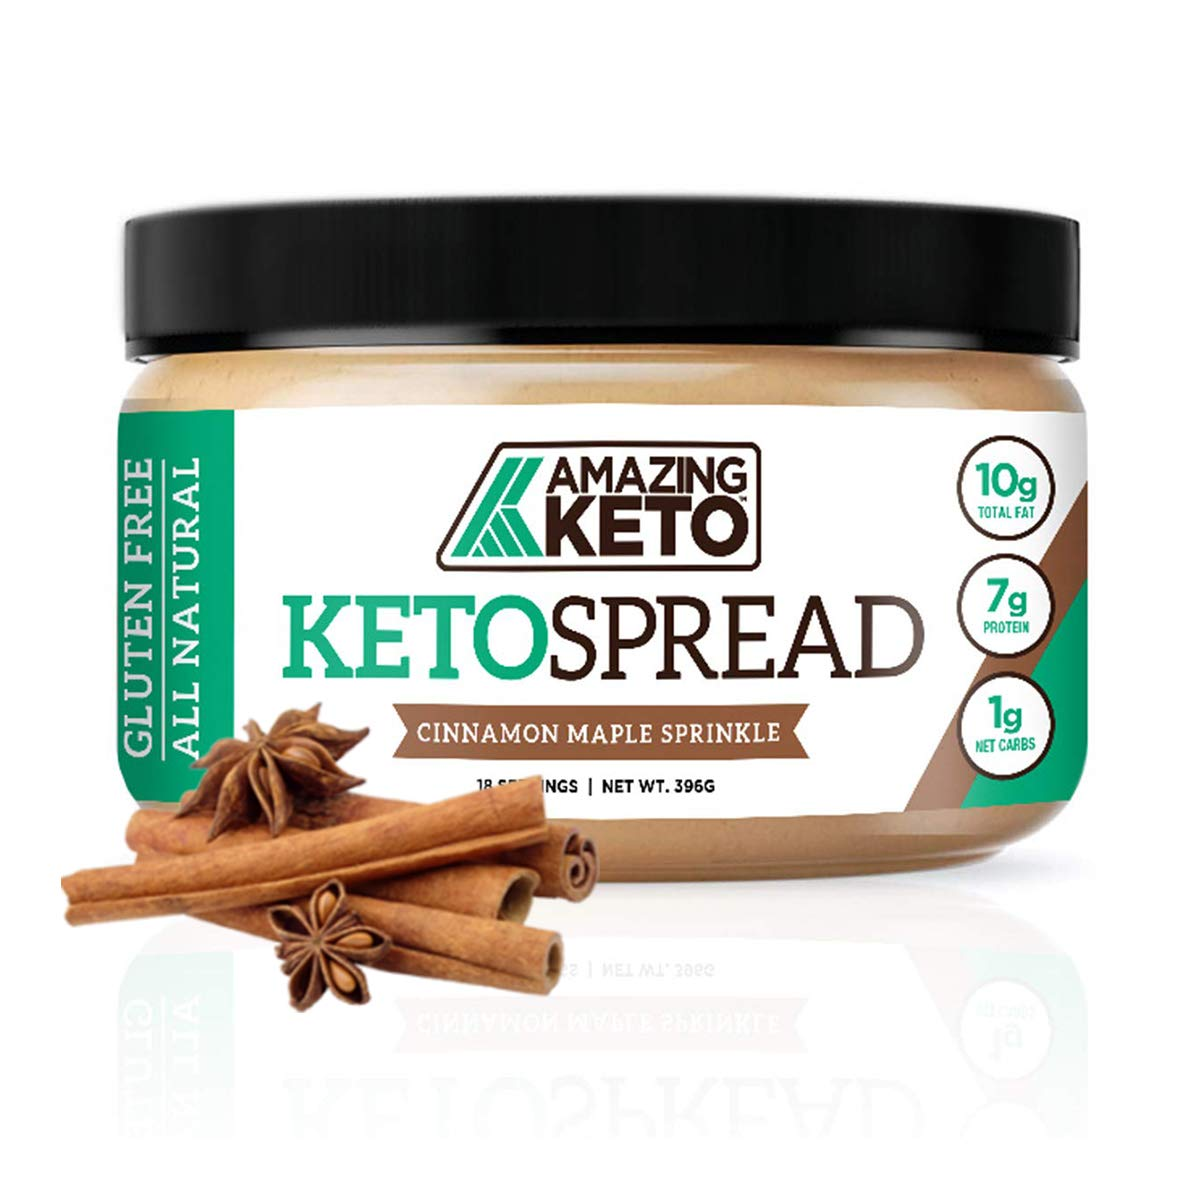 Amazing Keto Nut Butter Spread | Low Carb Keto Nut Butter Spread | Fat Bomb, Gluten Free & All Natural for Ketogenic Diet | 10G Fat, 7G Protein & 1G Net Carb | 18 Servings (Cinnamon Maple Sprinkle)